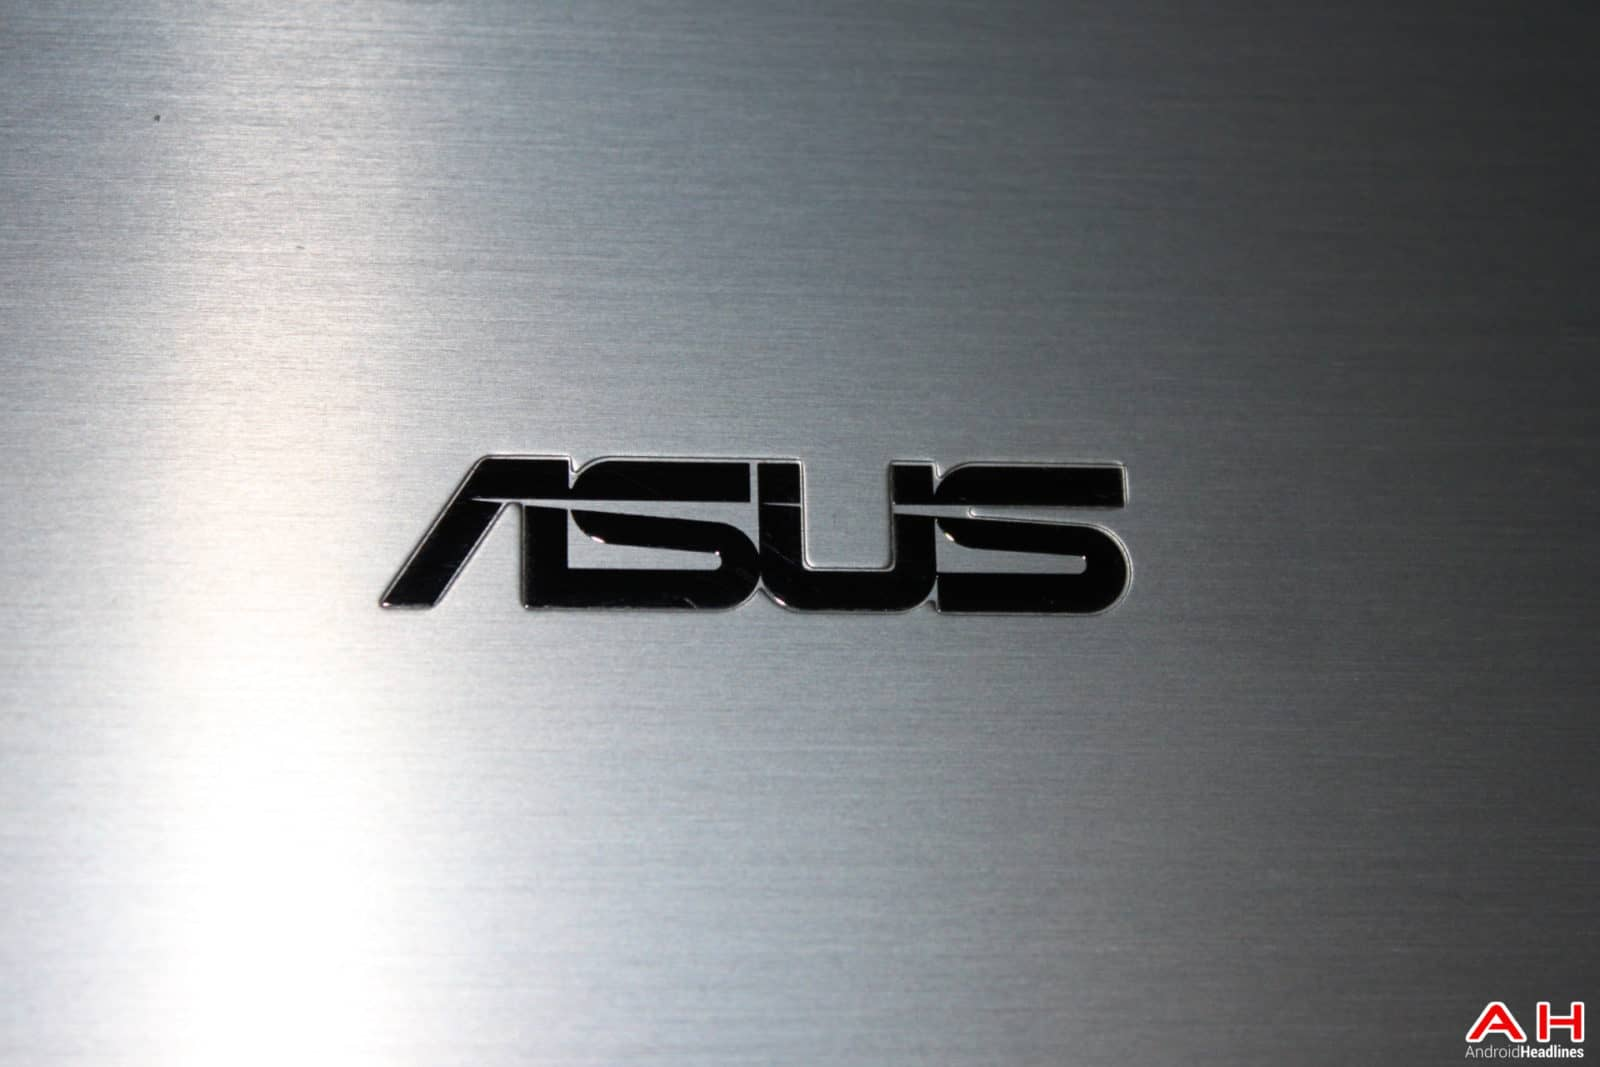 Bluetooth Certification Reveals Another Asus Smartphone Is On Its